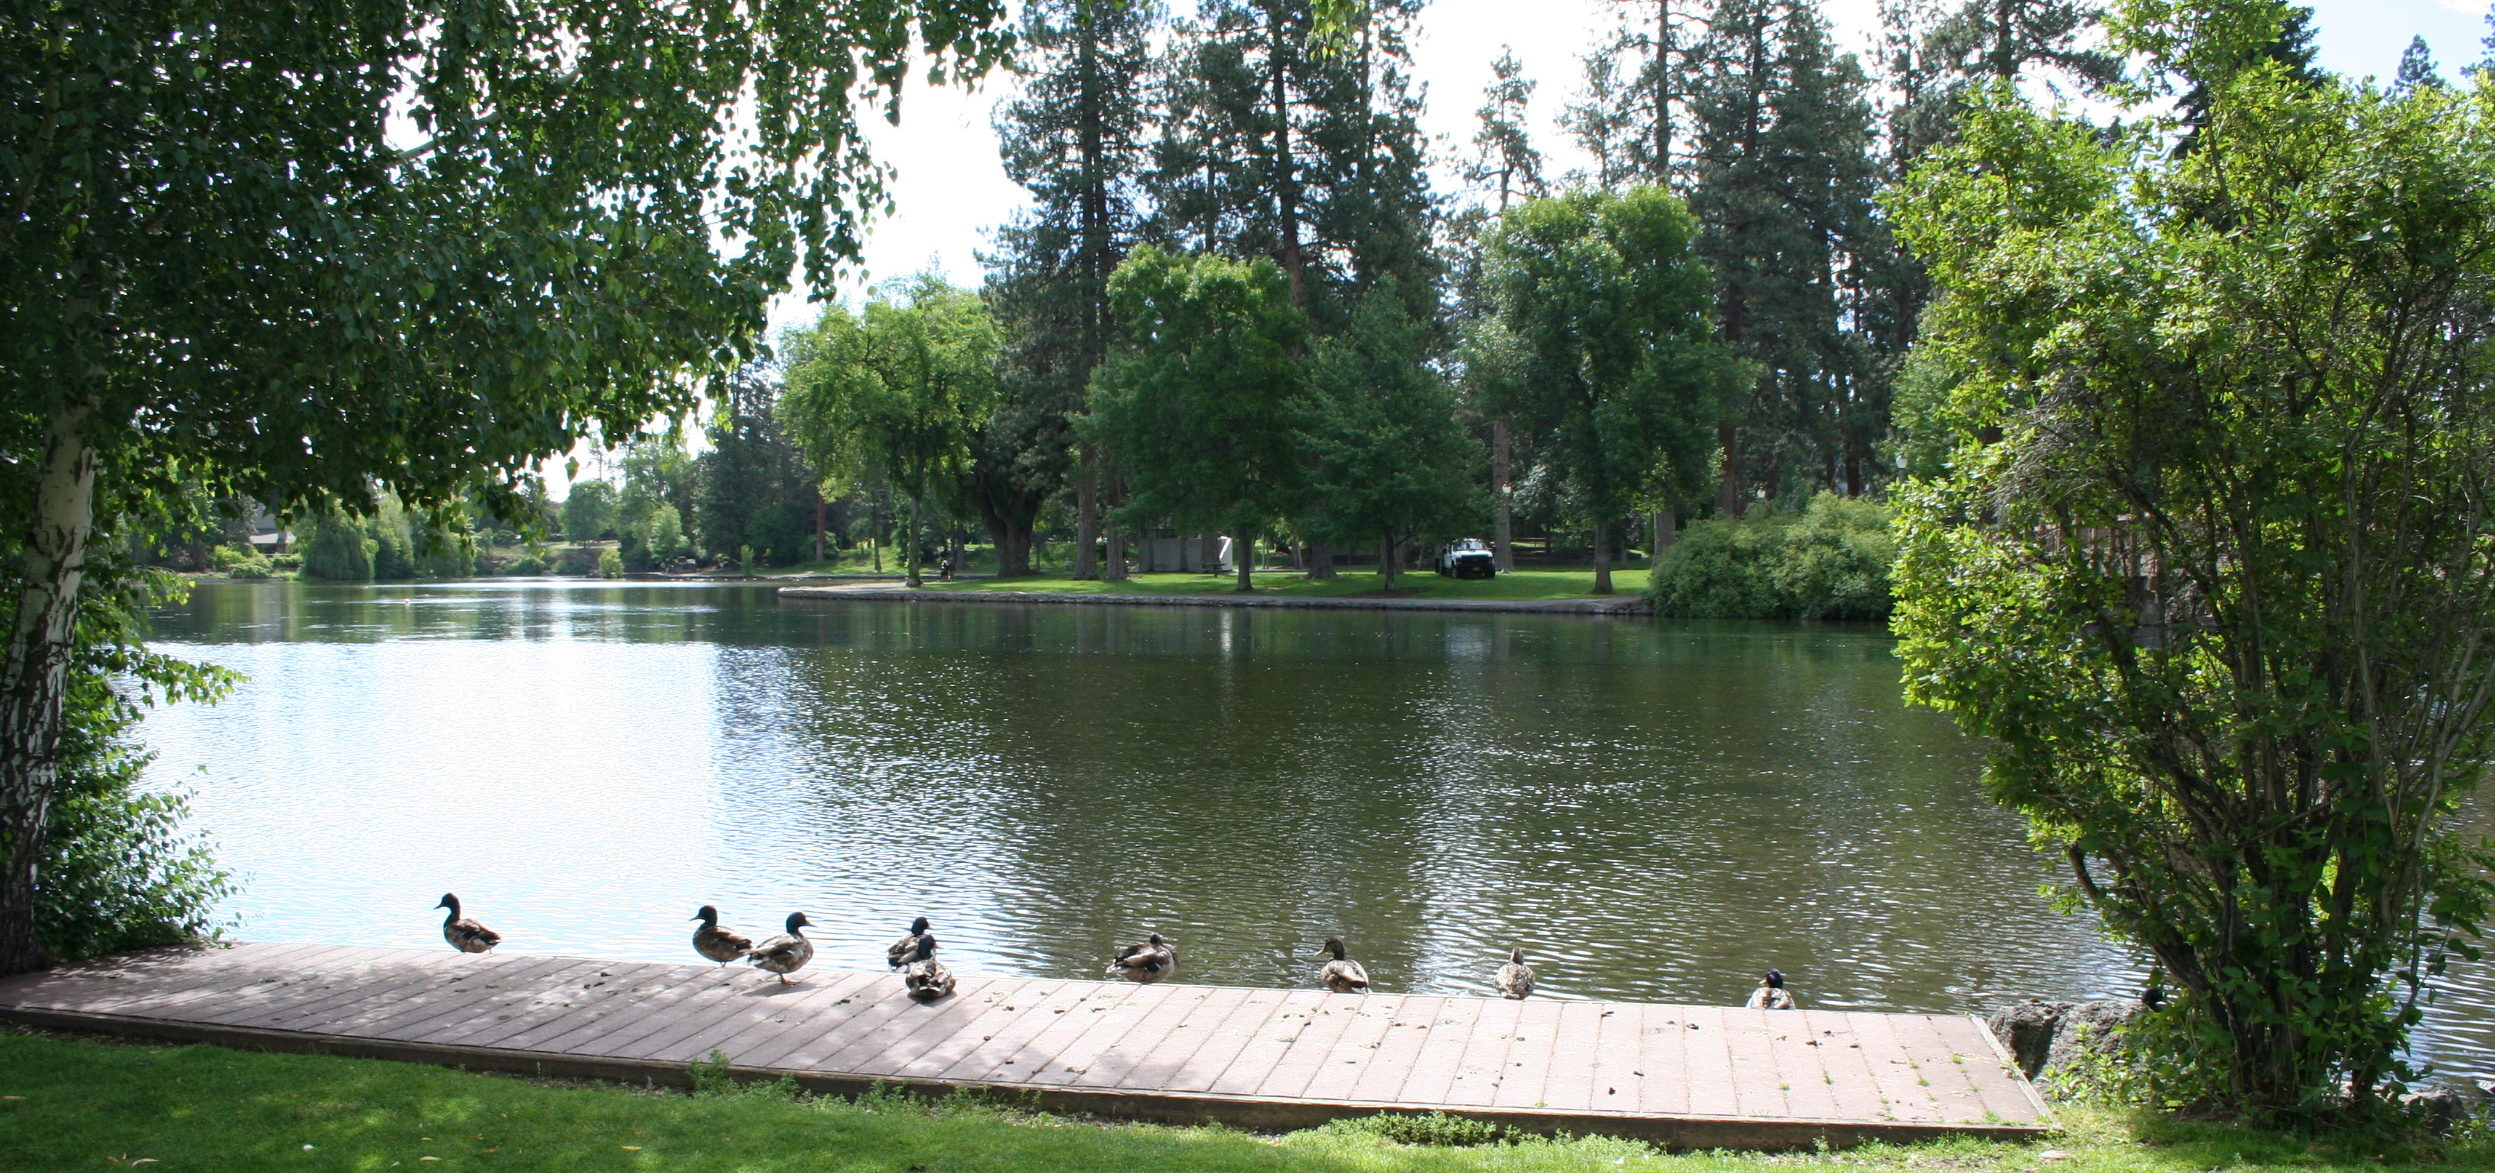 Image of river access at Pageant Park in Bend, Oreogn.